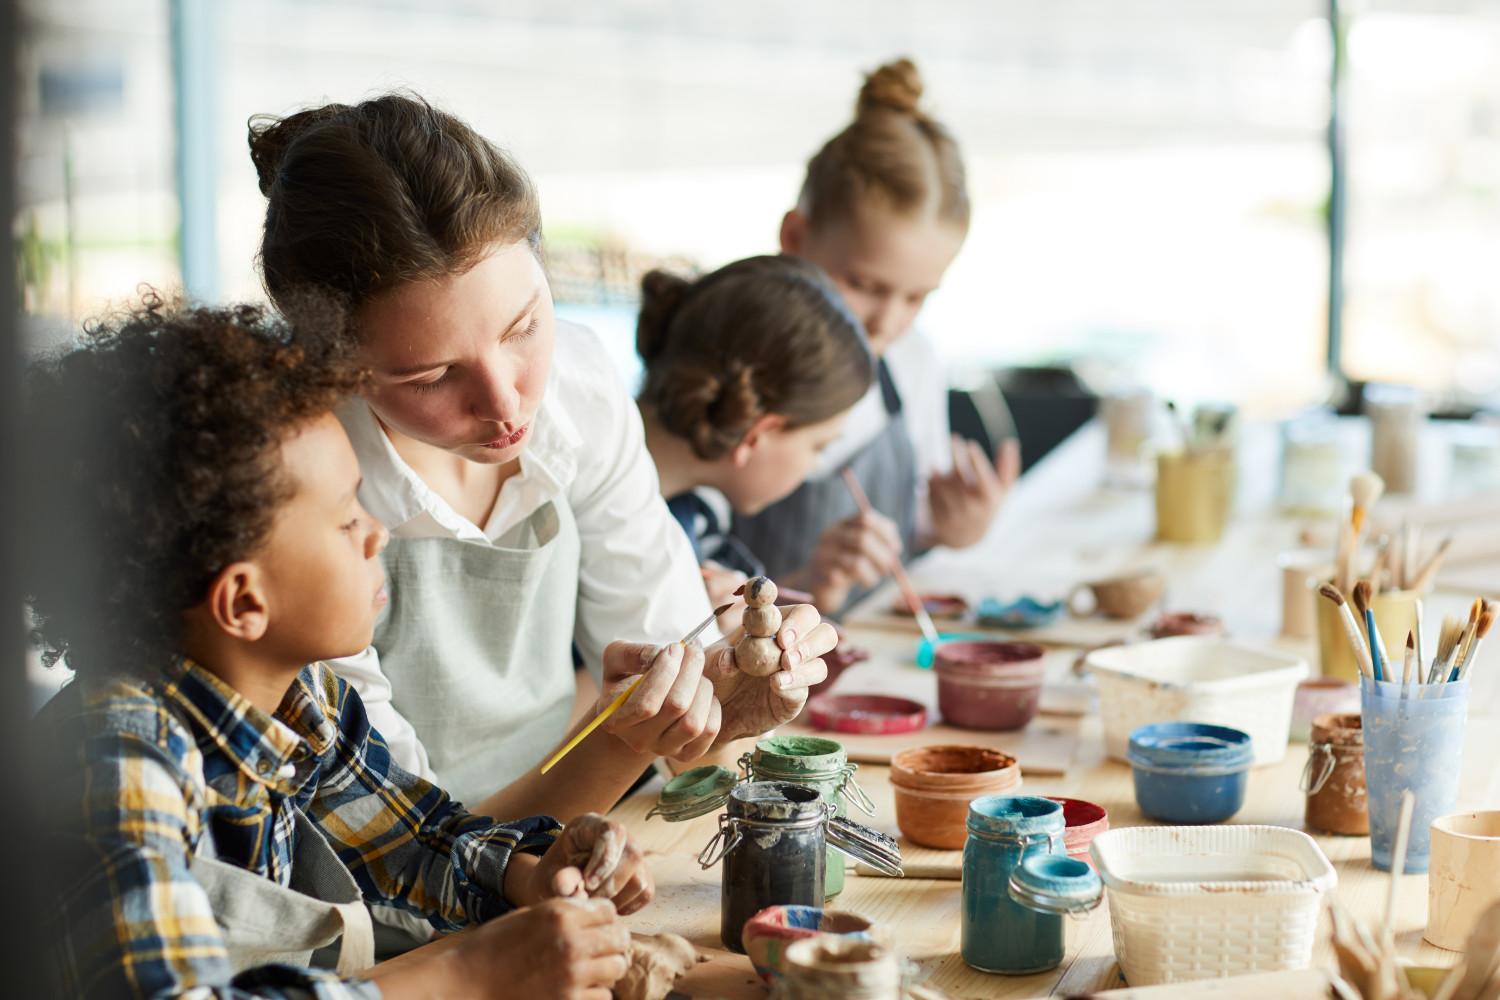 art classes for kids London.jpg